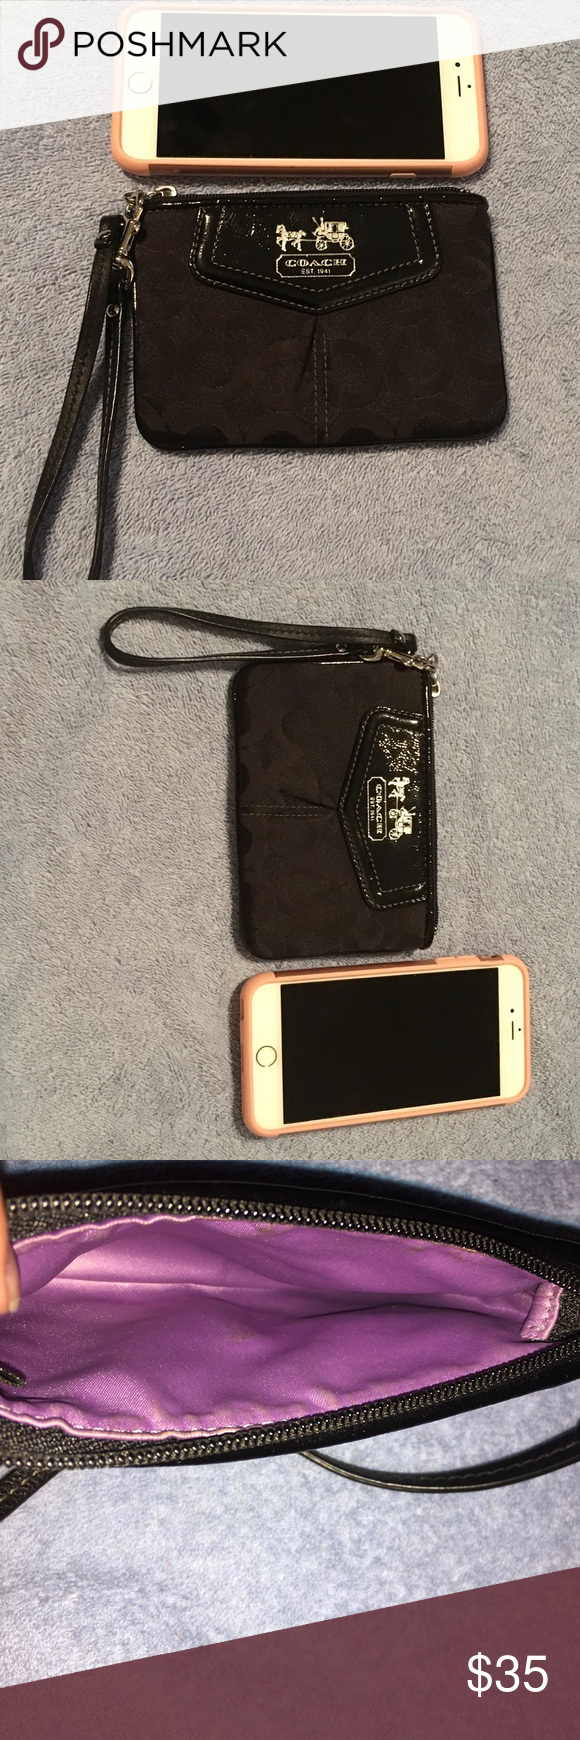 Coach Wristlet Still in good condition 3ae22be71864a